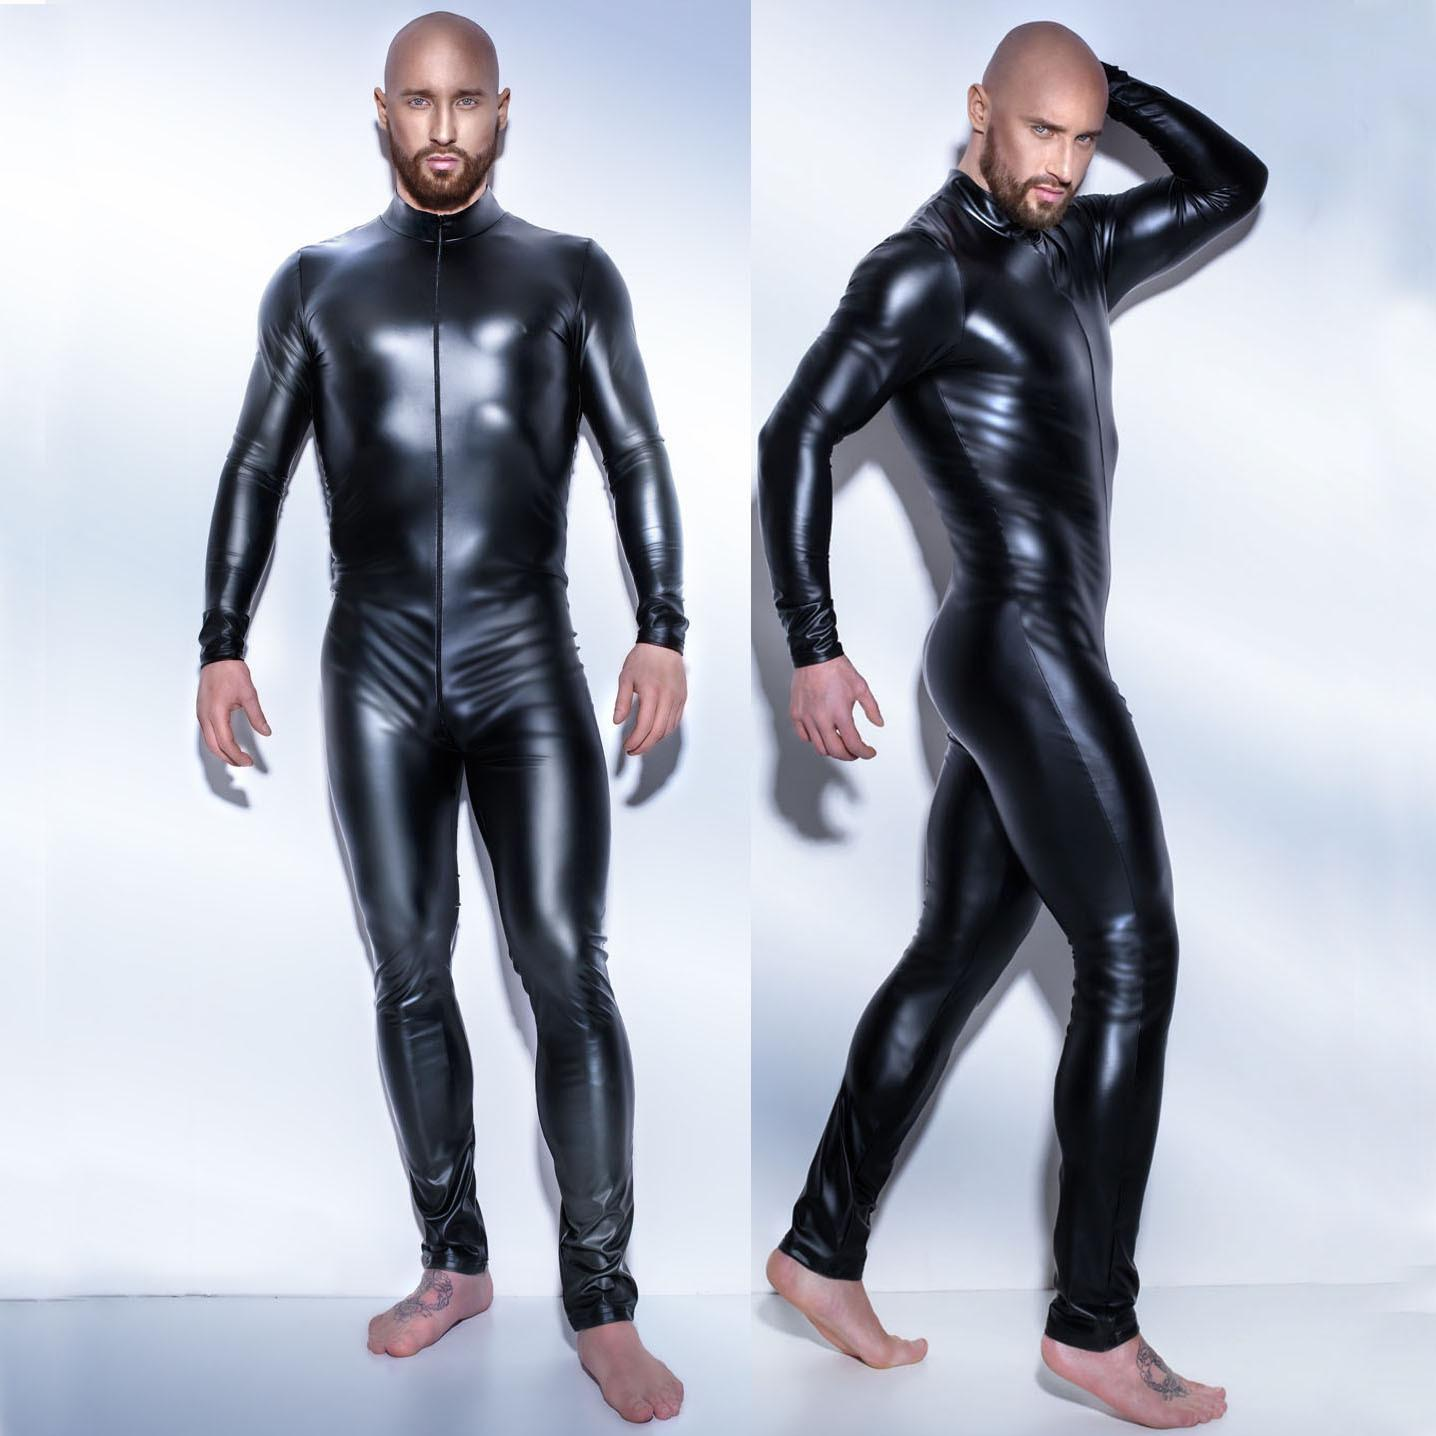 from Bruce clothing gay leather man plus size